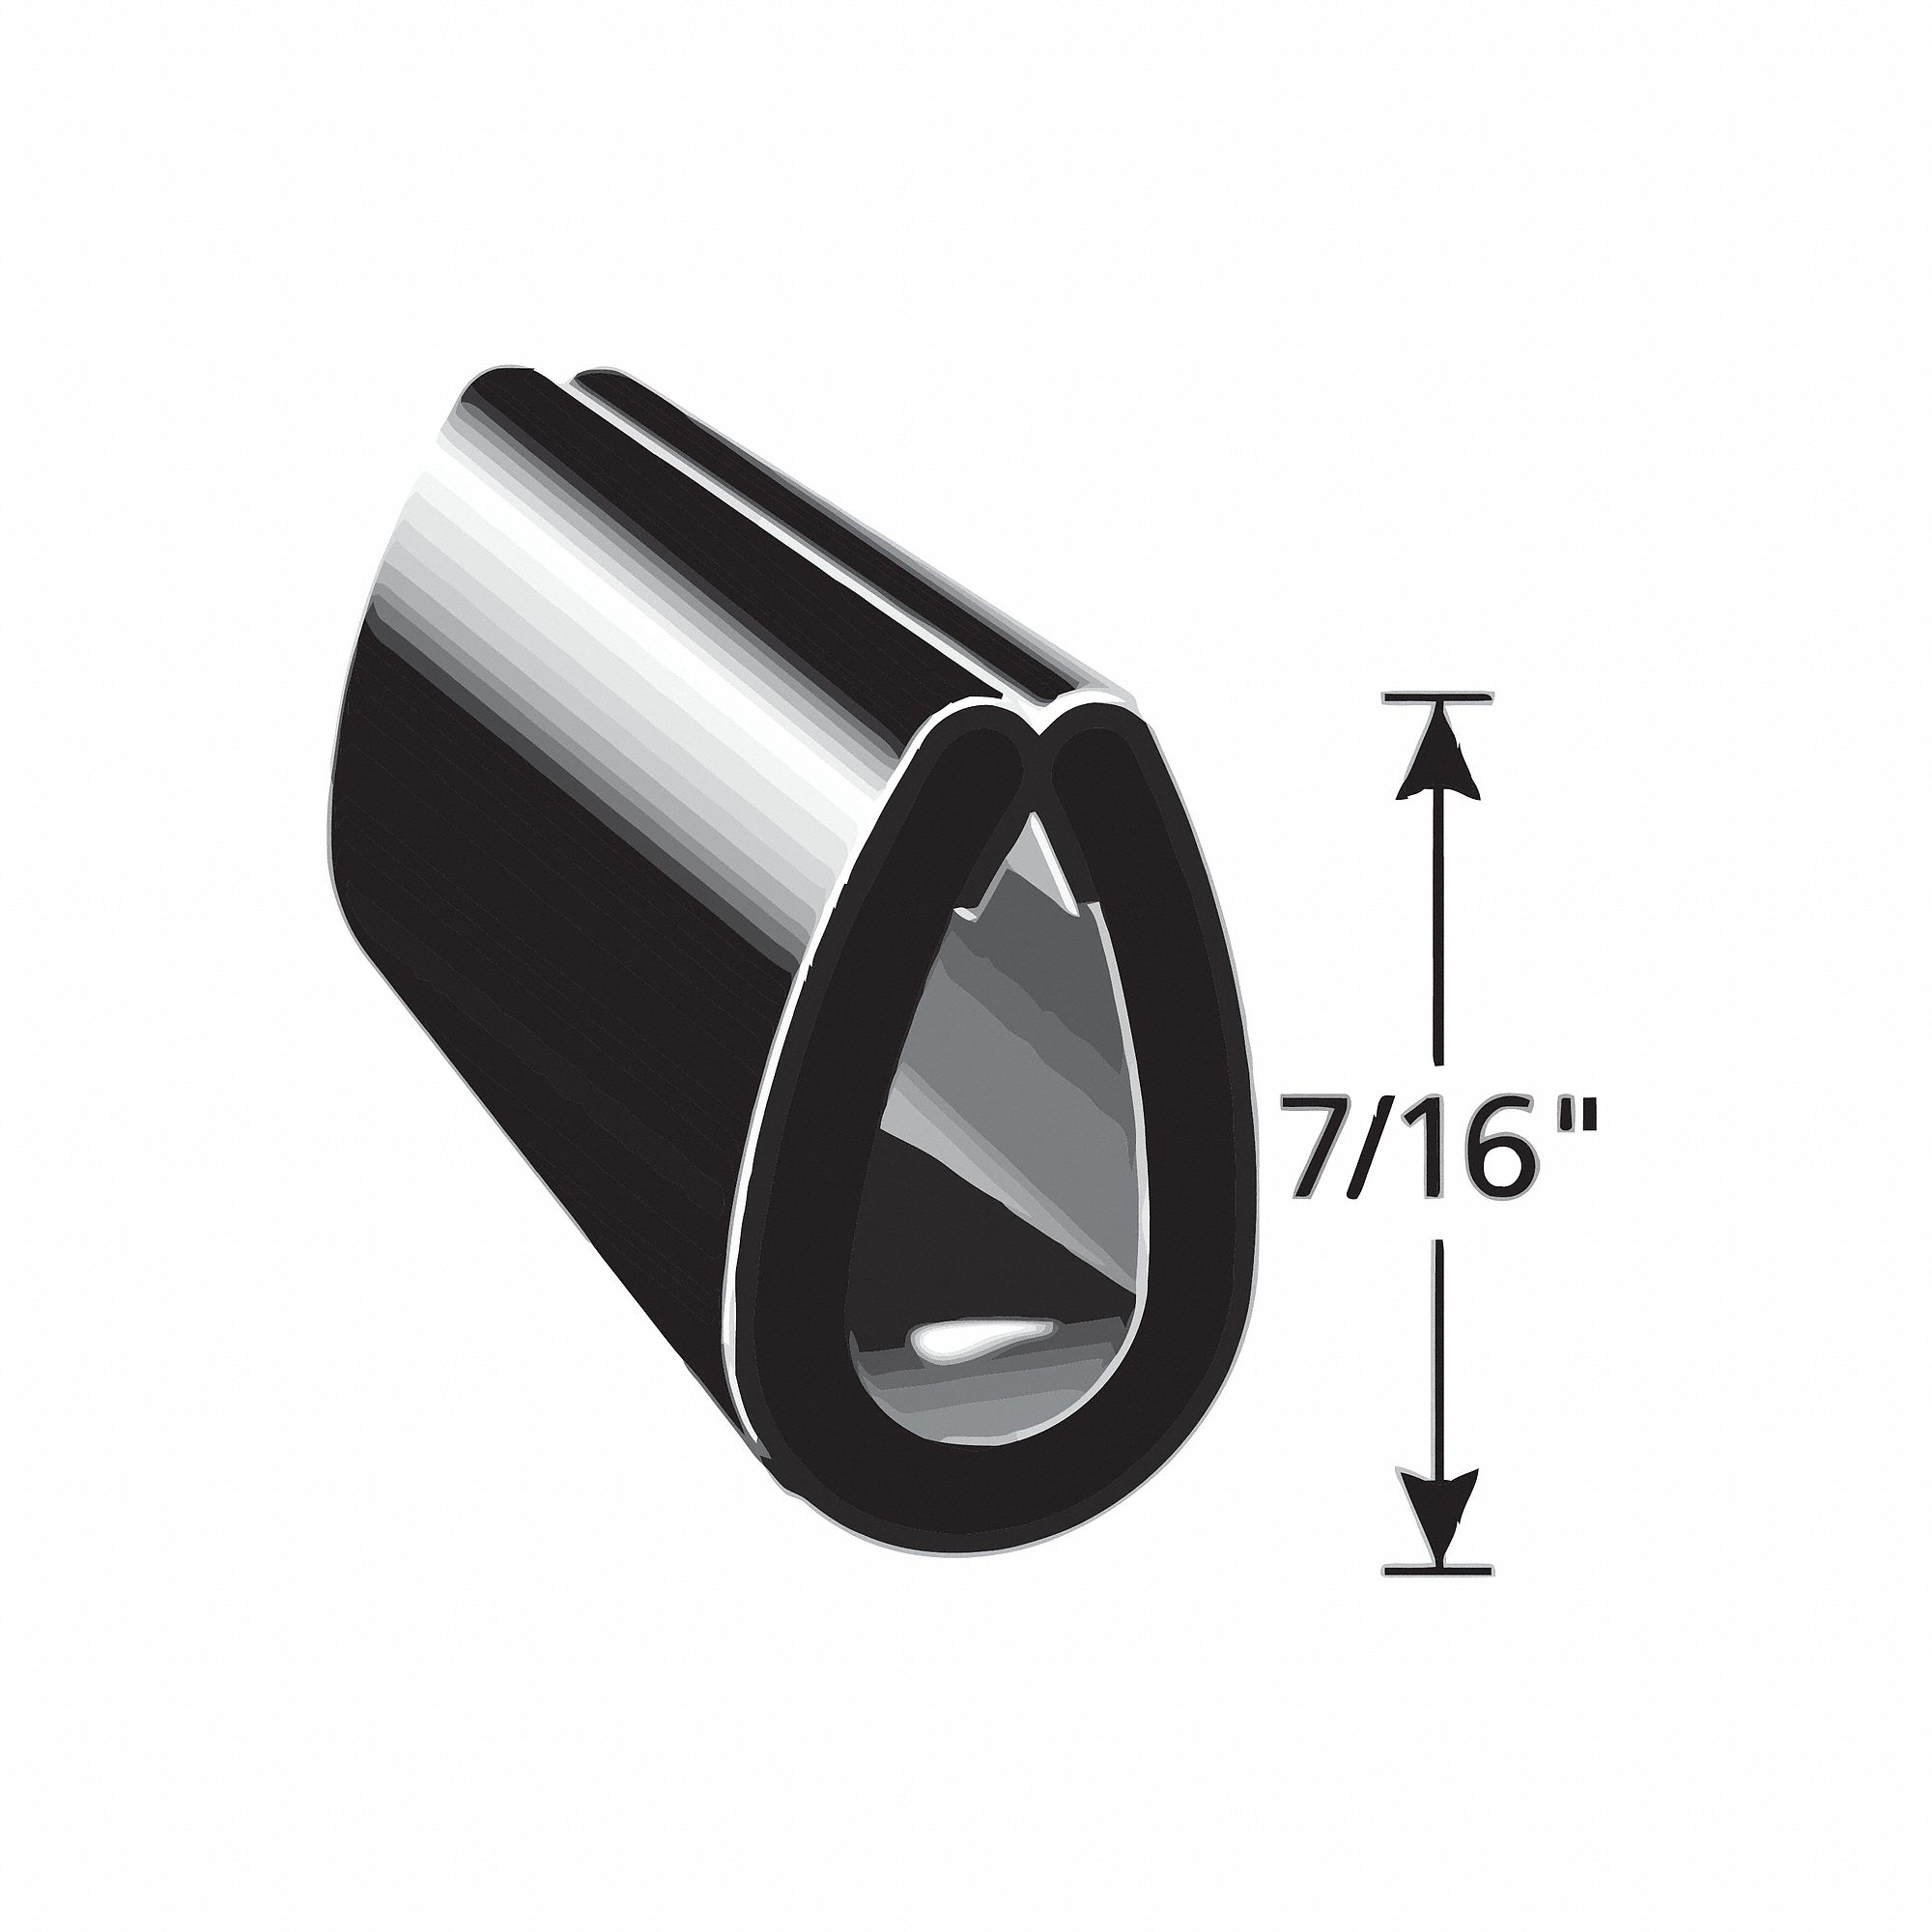 Edge Guard Black, 7/16 In. L, 25 Ft.